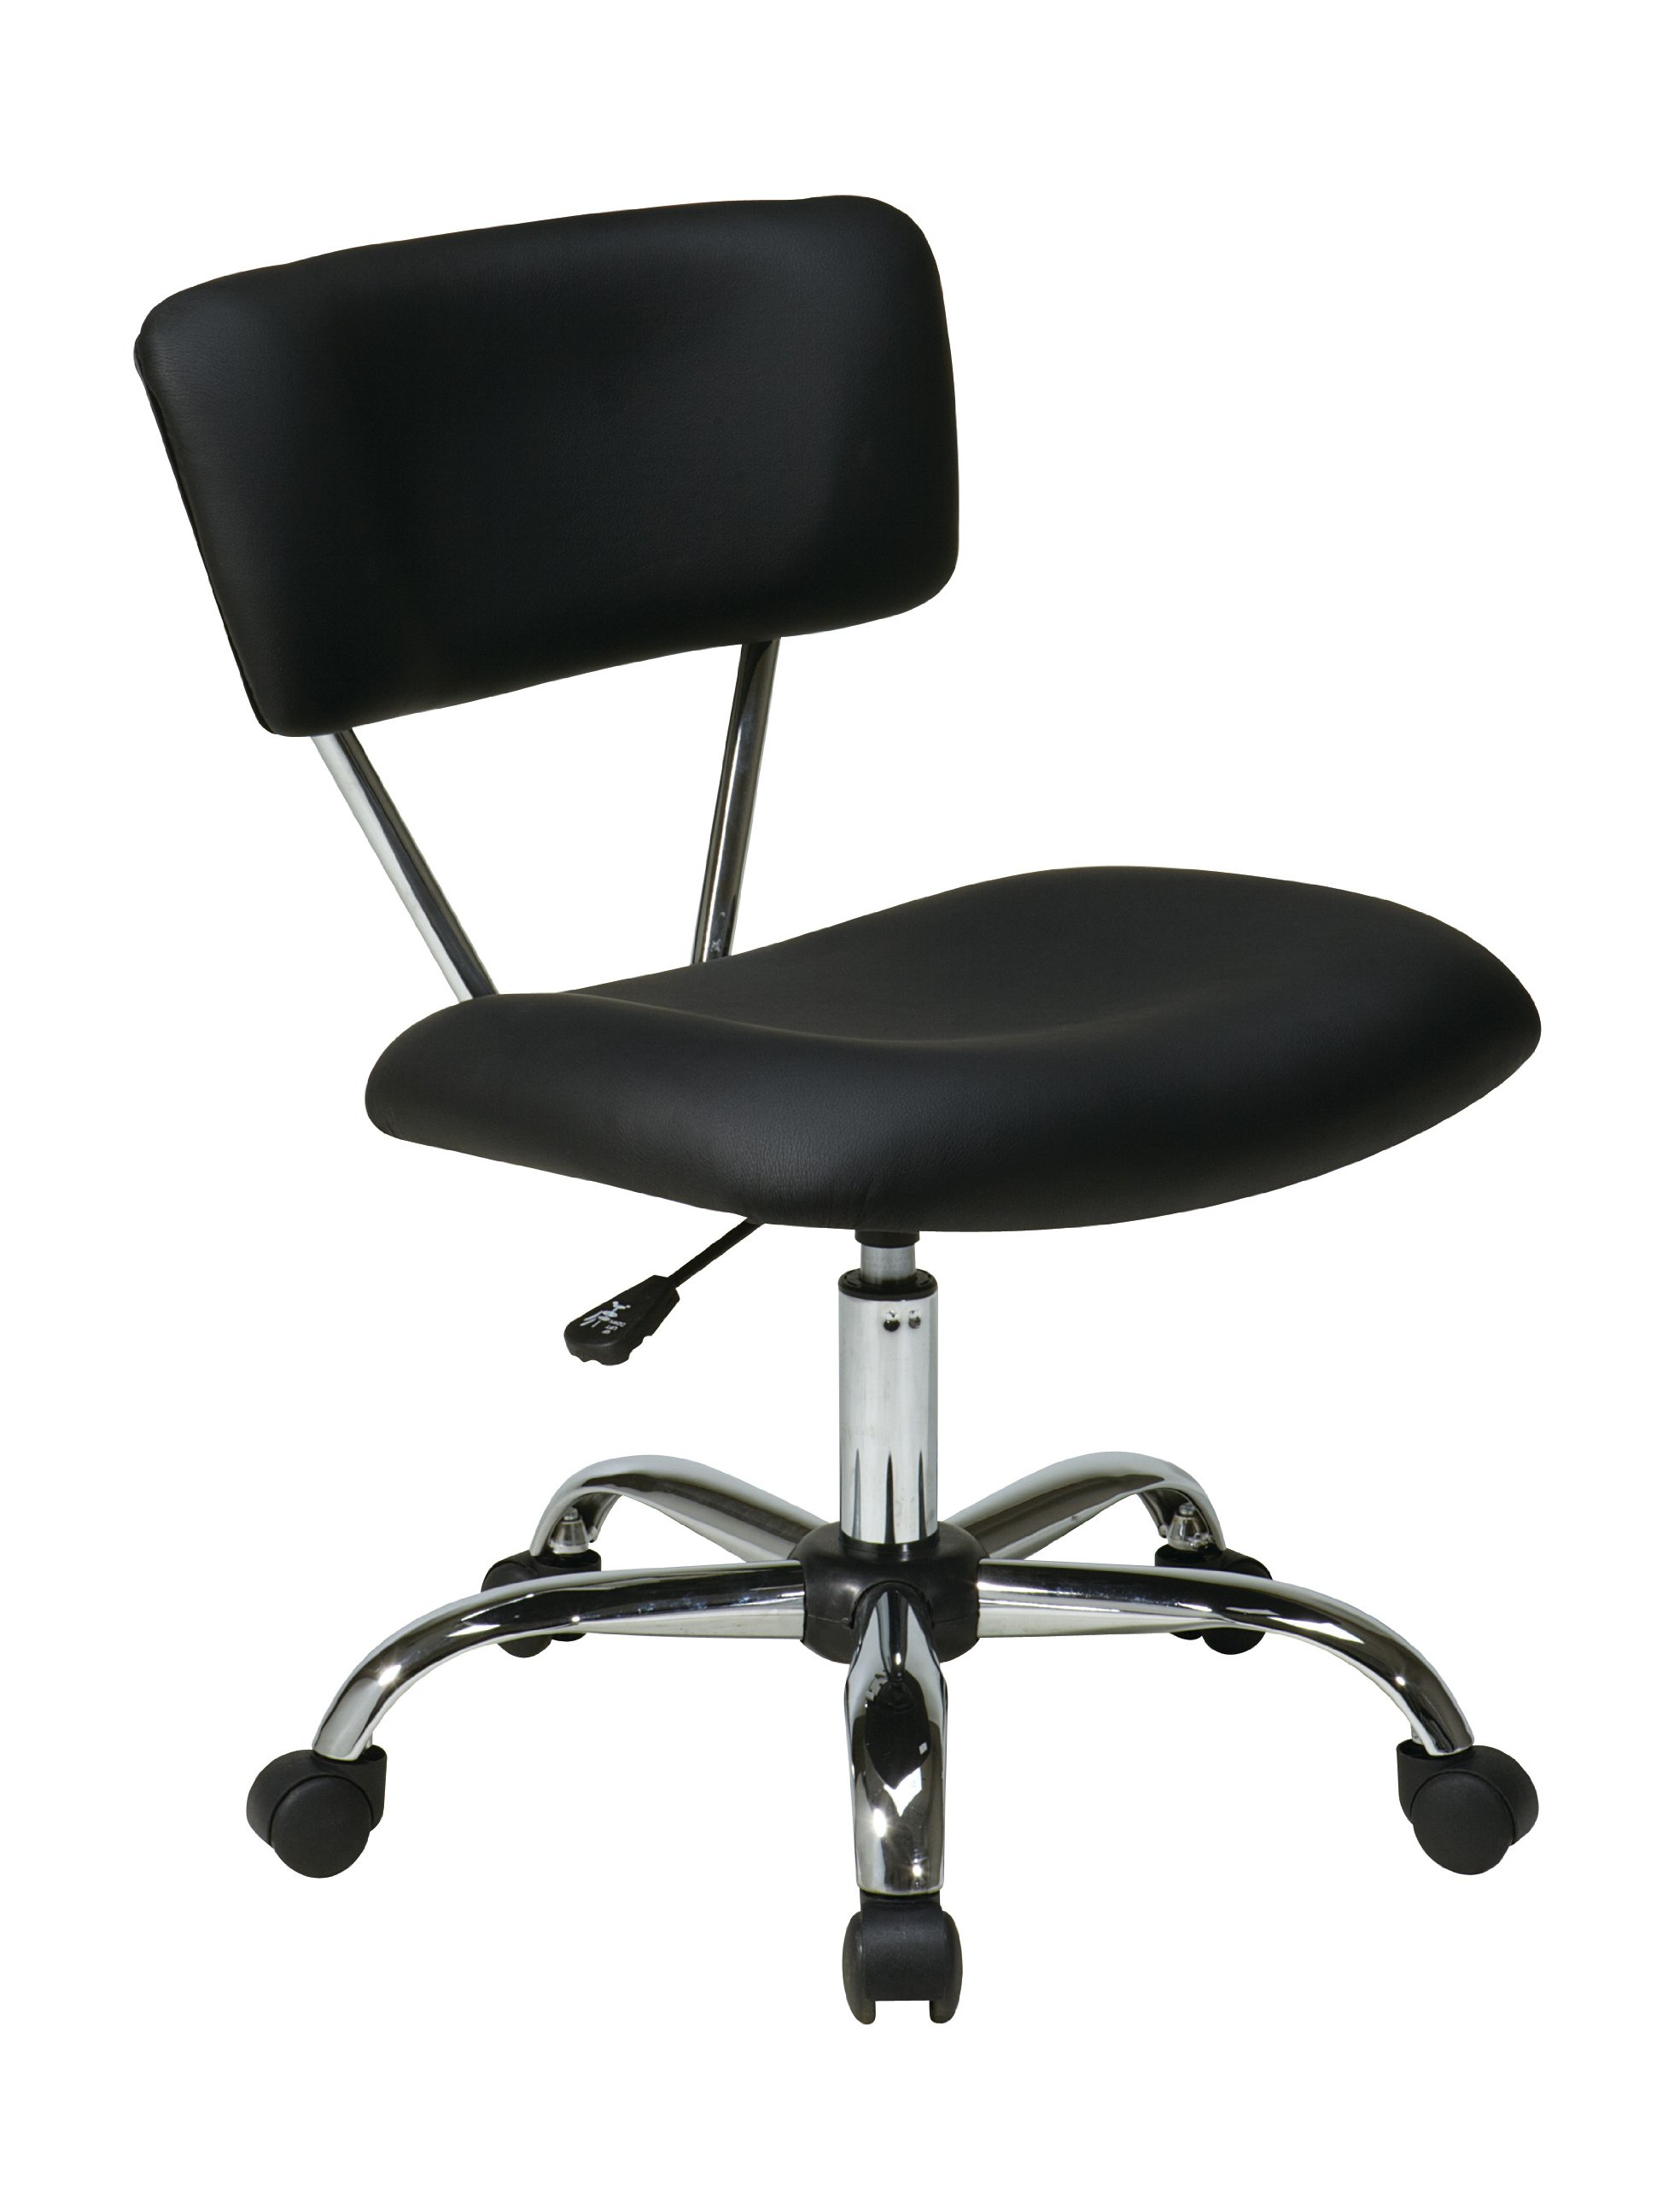 AVE SIX Vista Faux Leather Seat and Back Task Chair with Chrome Accents, Black